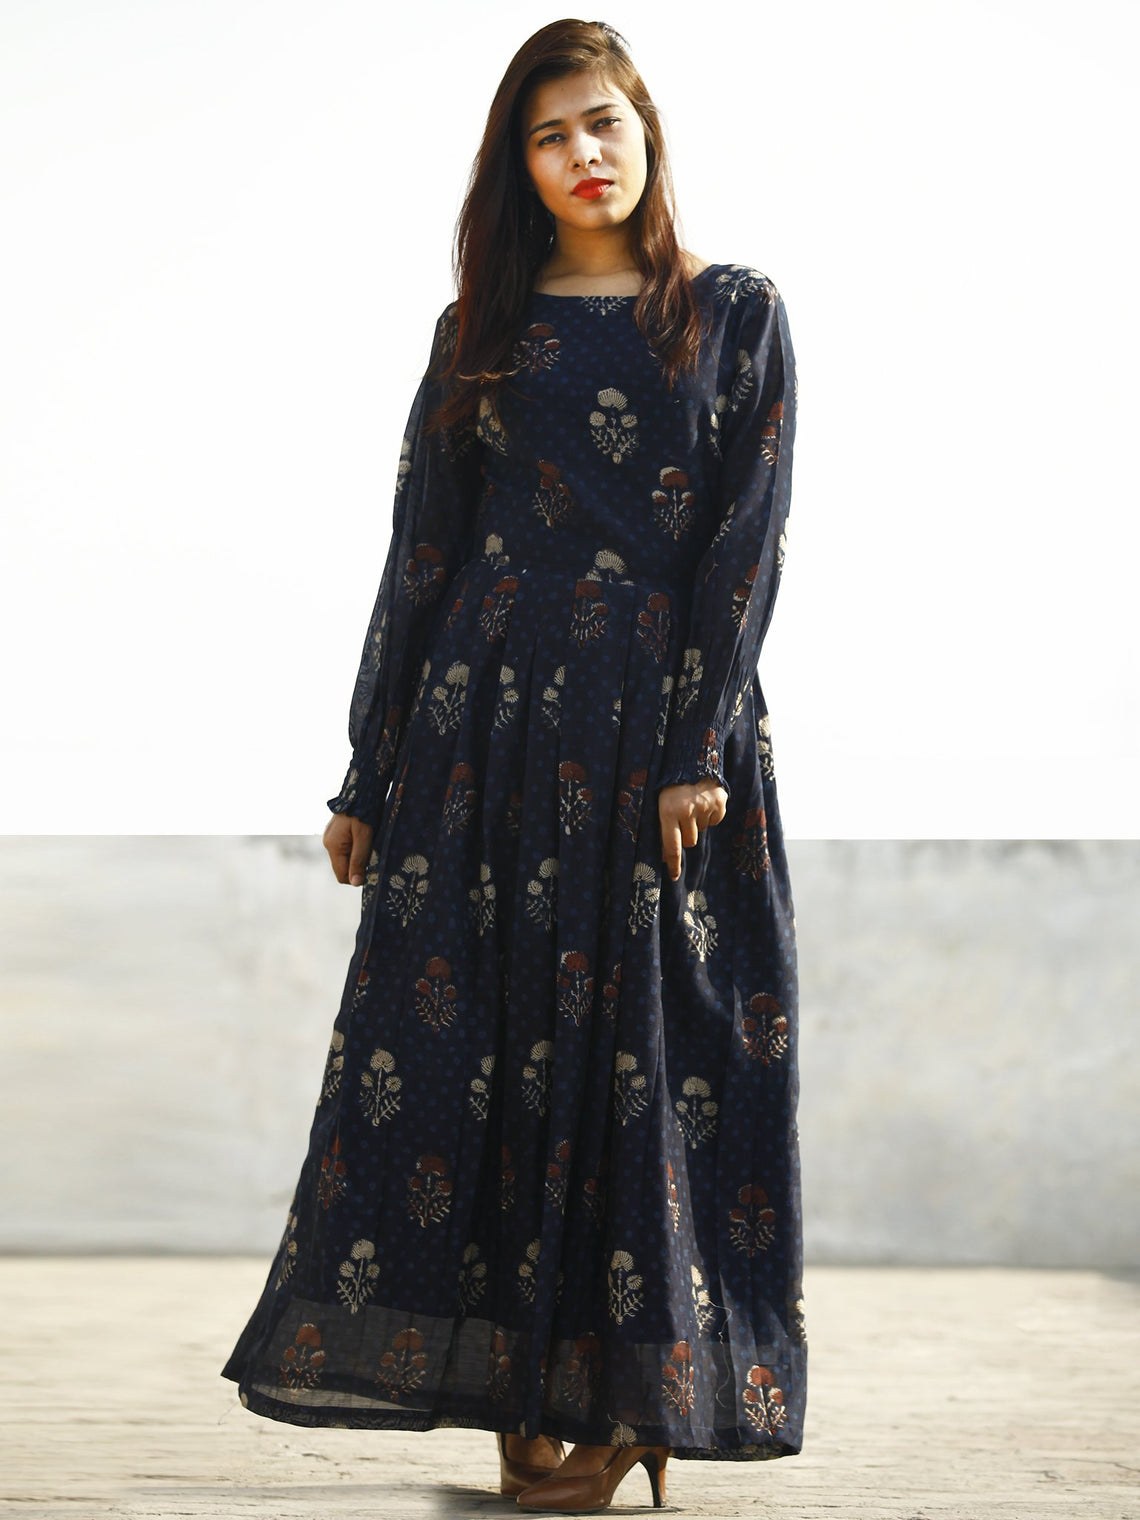 Indigo Rust Beige Hand Block Printed Chanderi Silk Dress With Box Pleats & Shirring Details at Sleeves (With Lining) - D178F1141